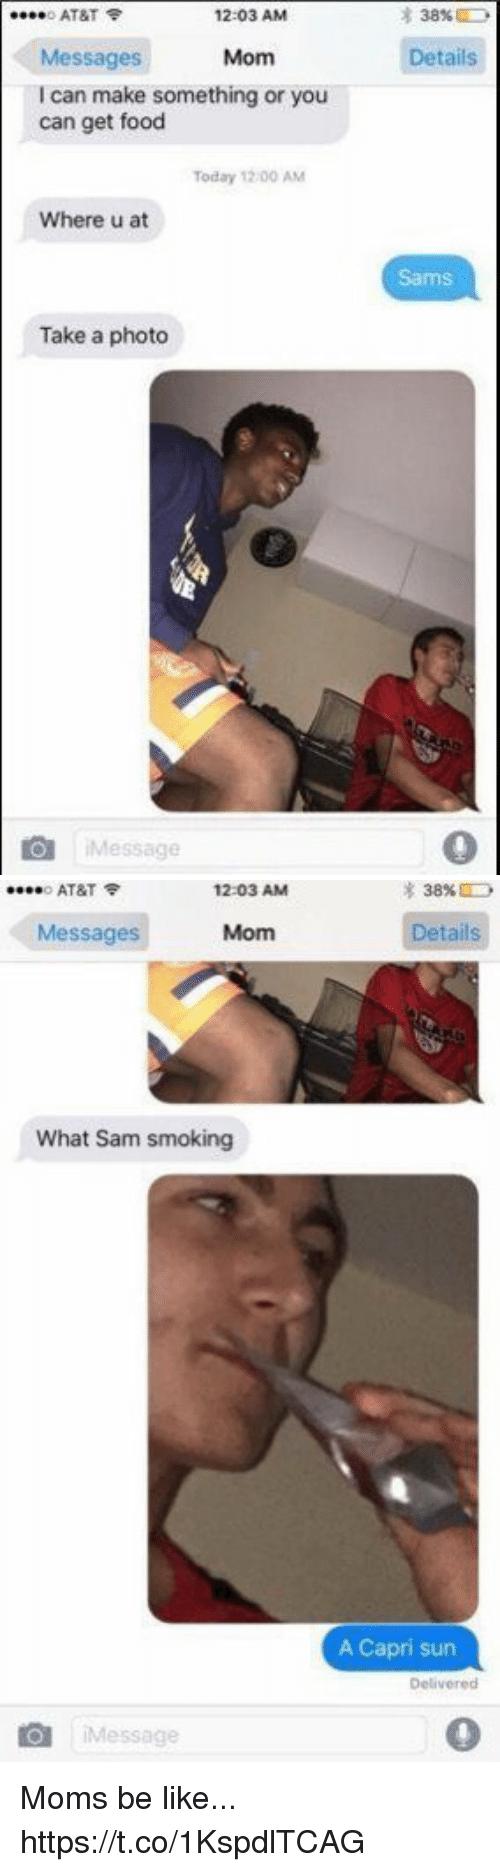 Moms Be Like: o AT&T  12:03 AM  38%  Details  Messages  I can make something or you  can get food  Mom  Today 12/00 AM  Where u at  Sams  Take a photo  iMessage   o AT&T令  12:03 AM  38%  Messages  Mom  etails  What Sam smoking  A Capri sun  Delivered  iMessage  0 Moms be like... https://t.co/1KspdlTCAG